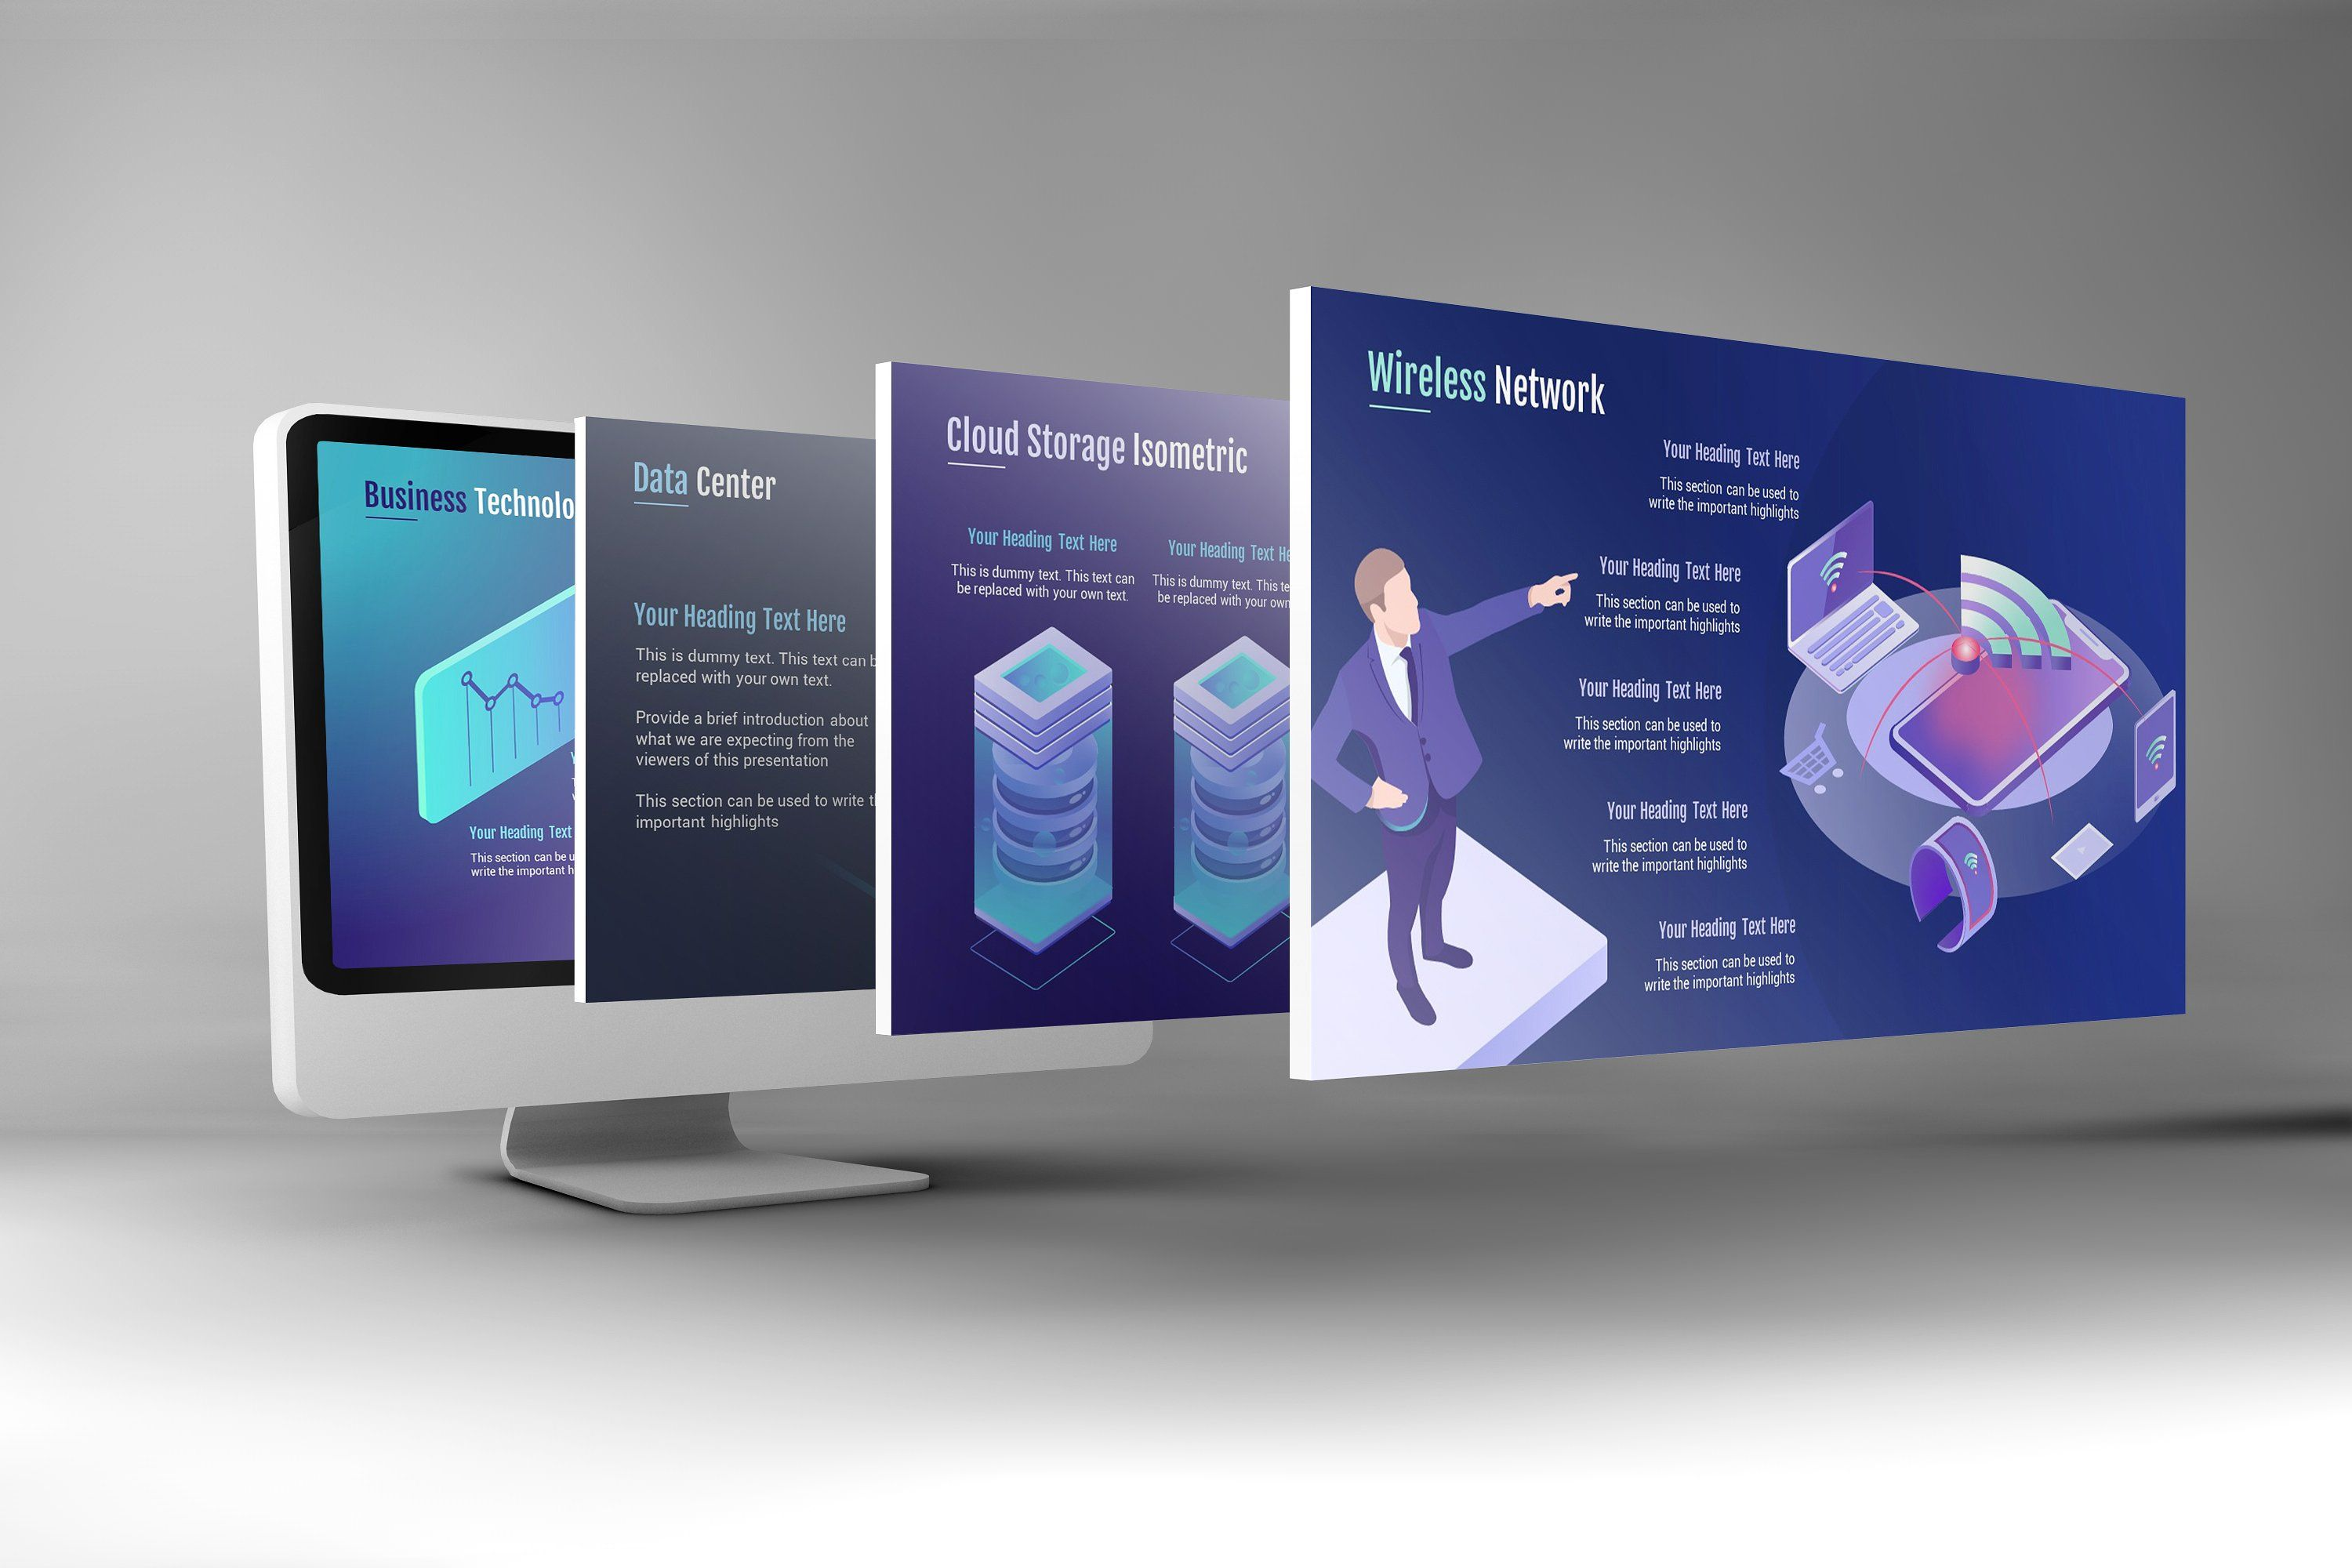 Smart Technology Keynote Template By Renure On Creativemarket The World Of Is Moving Too